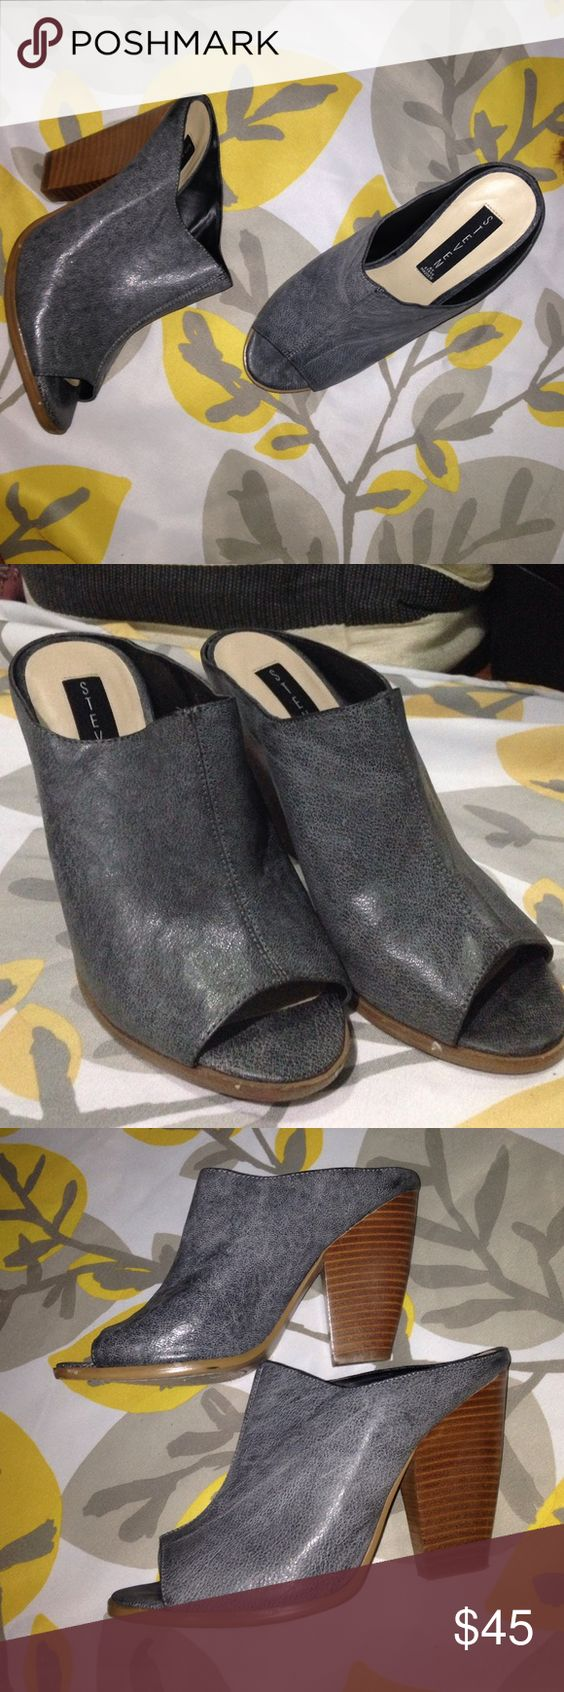 NWOB Steven by Steve Madden heeled mule clogs New without box Steven by Steve Madden Carisma  Blue 3inch heels. 🙋 send me offers Steven by Steve Madden Shoes Mules & Clogs